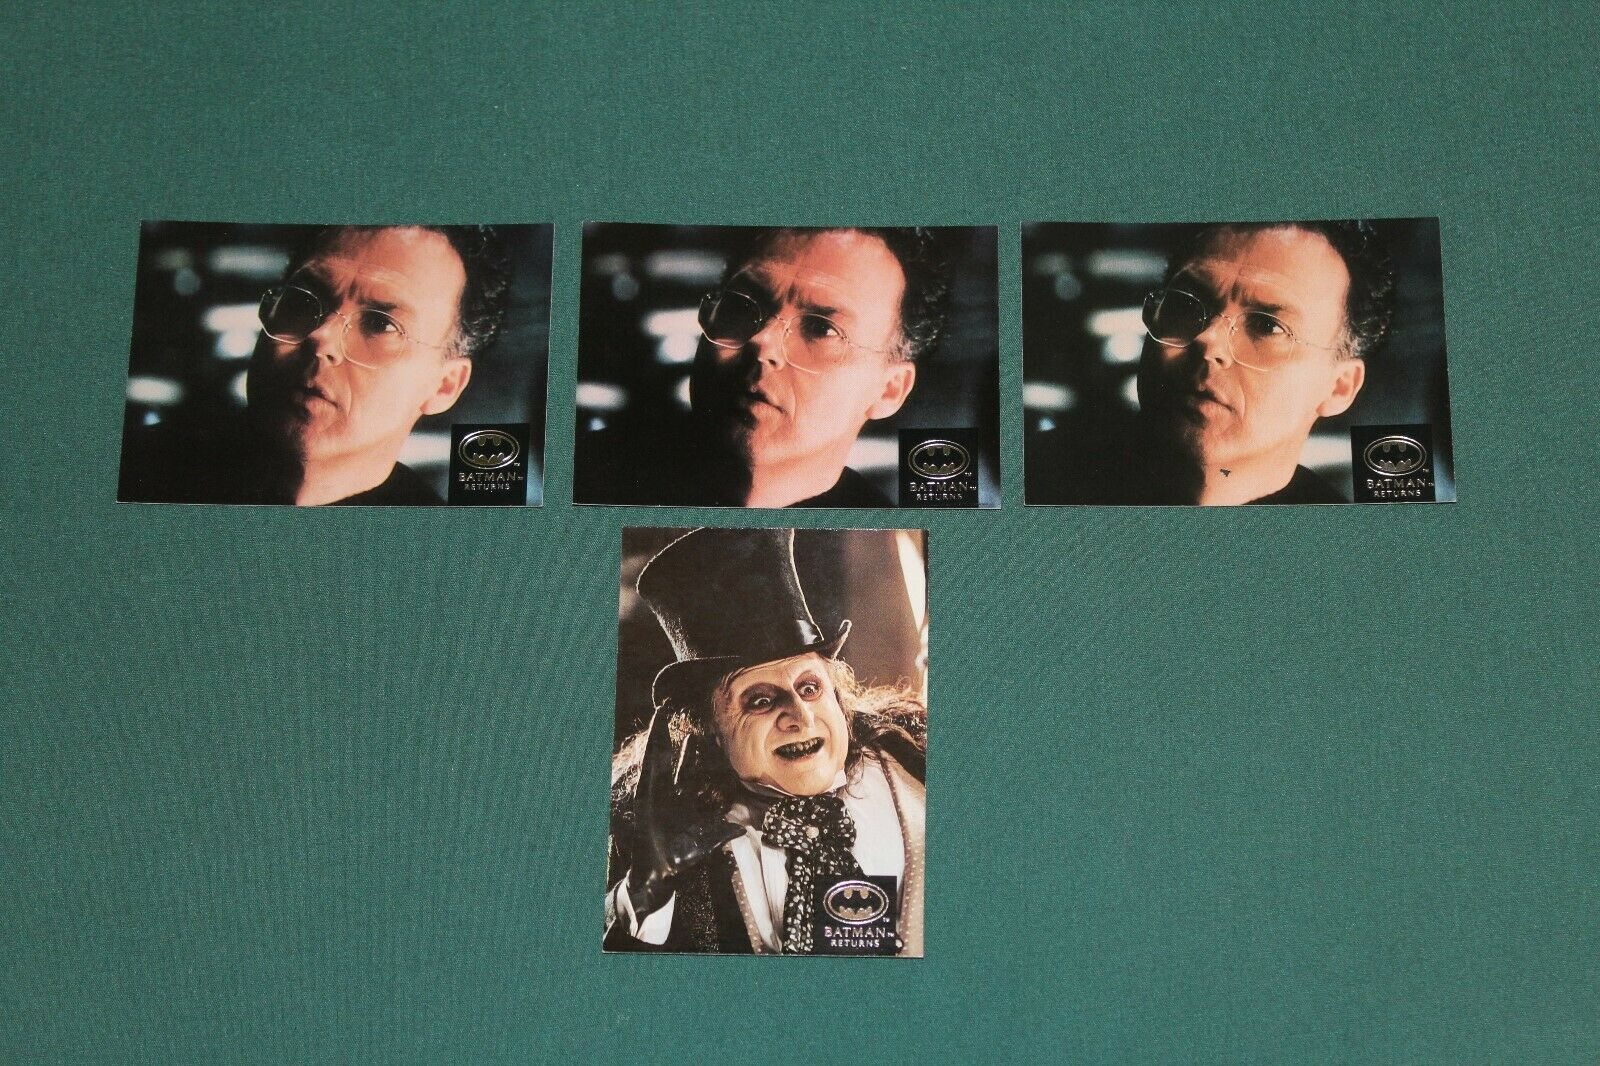 BATMAN RETURNS 1992 TOPPS STADIUM CLUB CARDS: 2,4,5,6,7,10,12,13,14,15,16,17,20 Без бренда NONE